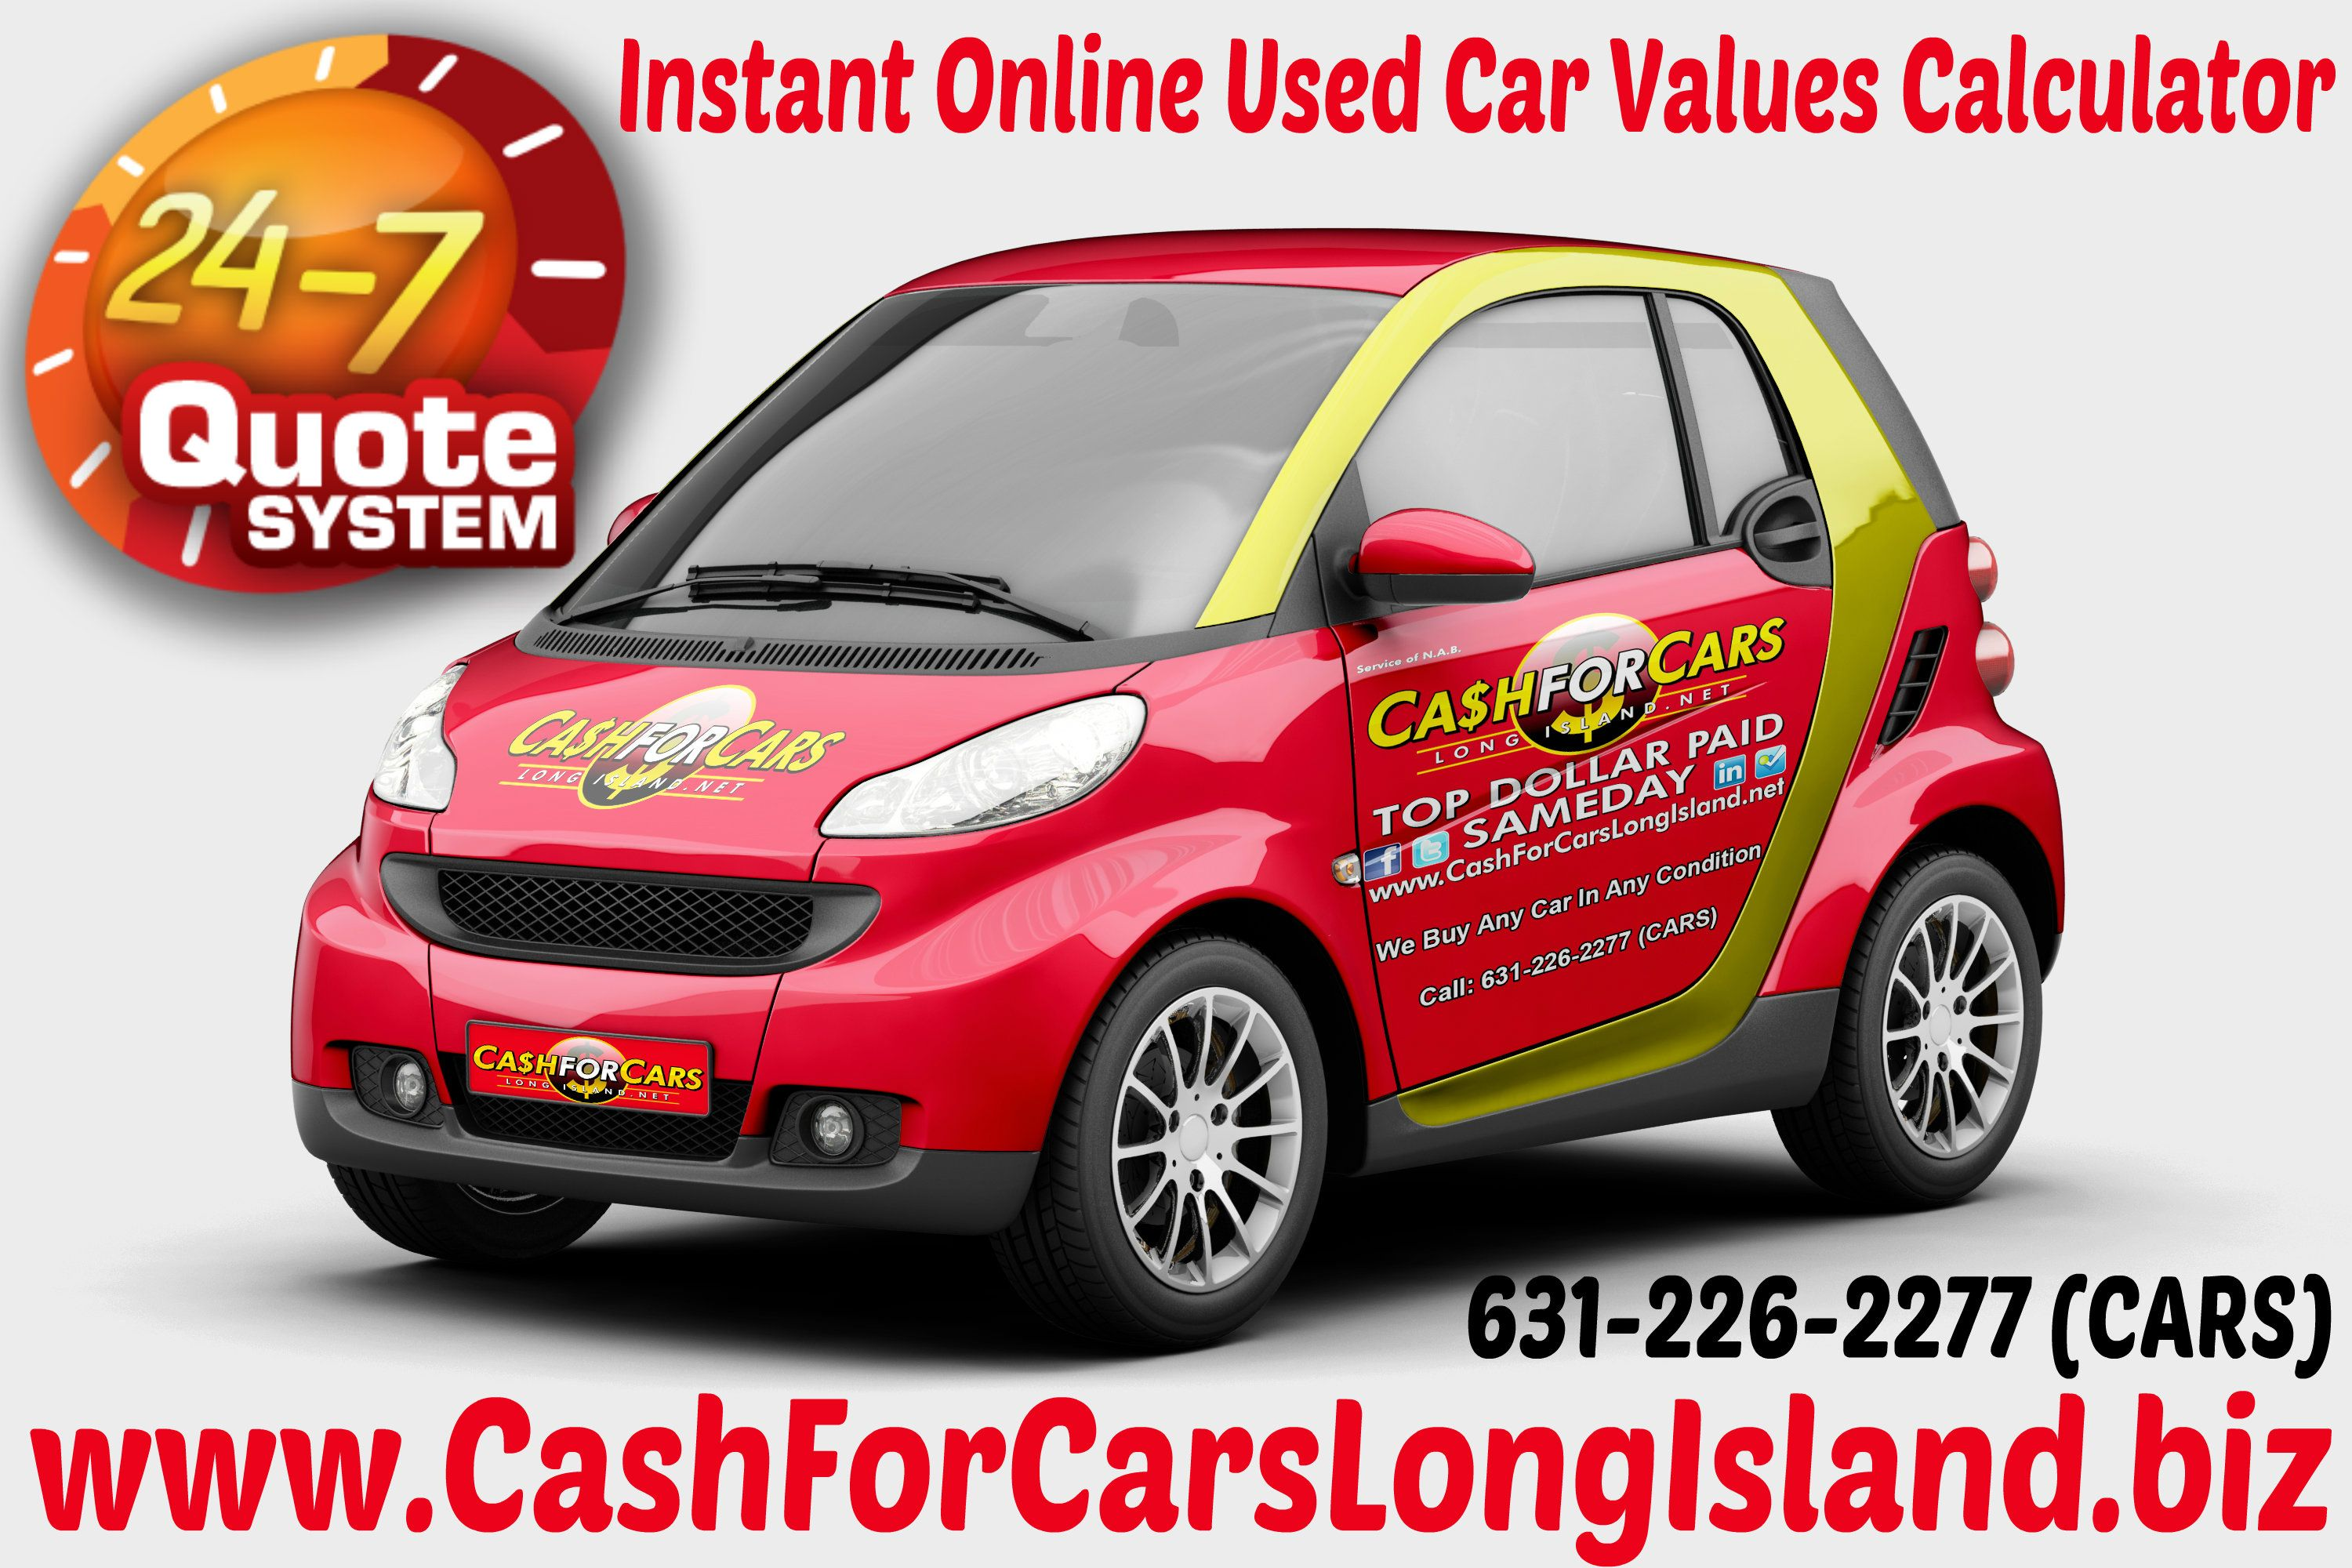 Instant Online Used Car Values Calculator, Easy To Use - Get Your ...